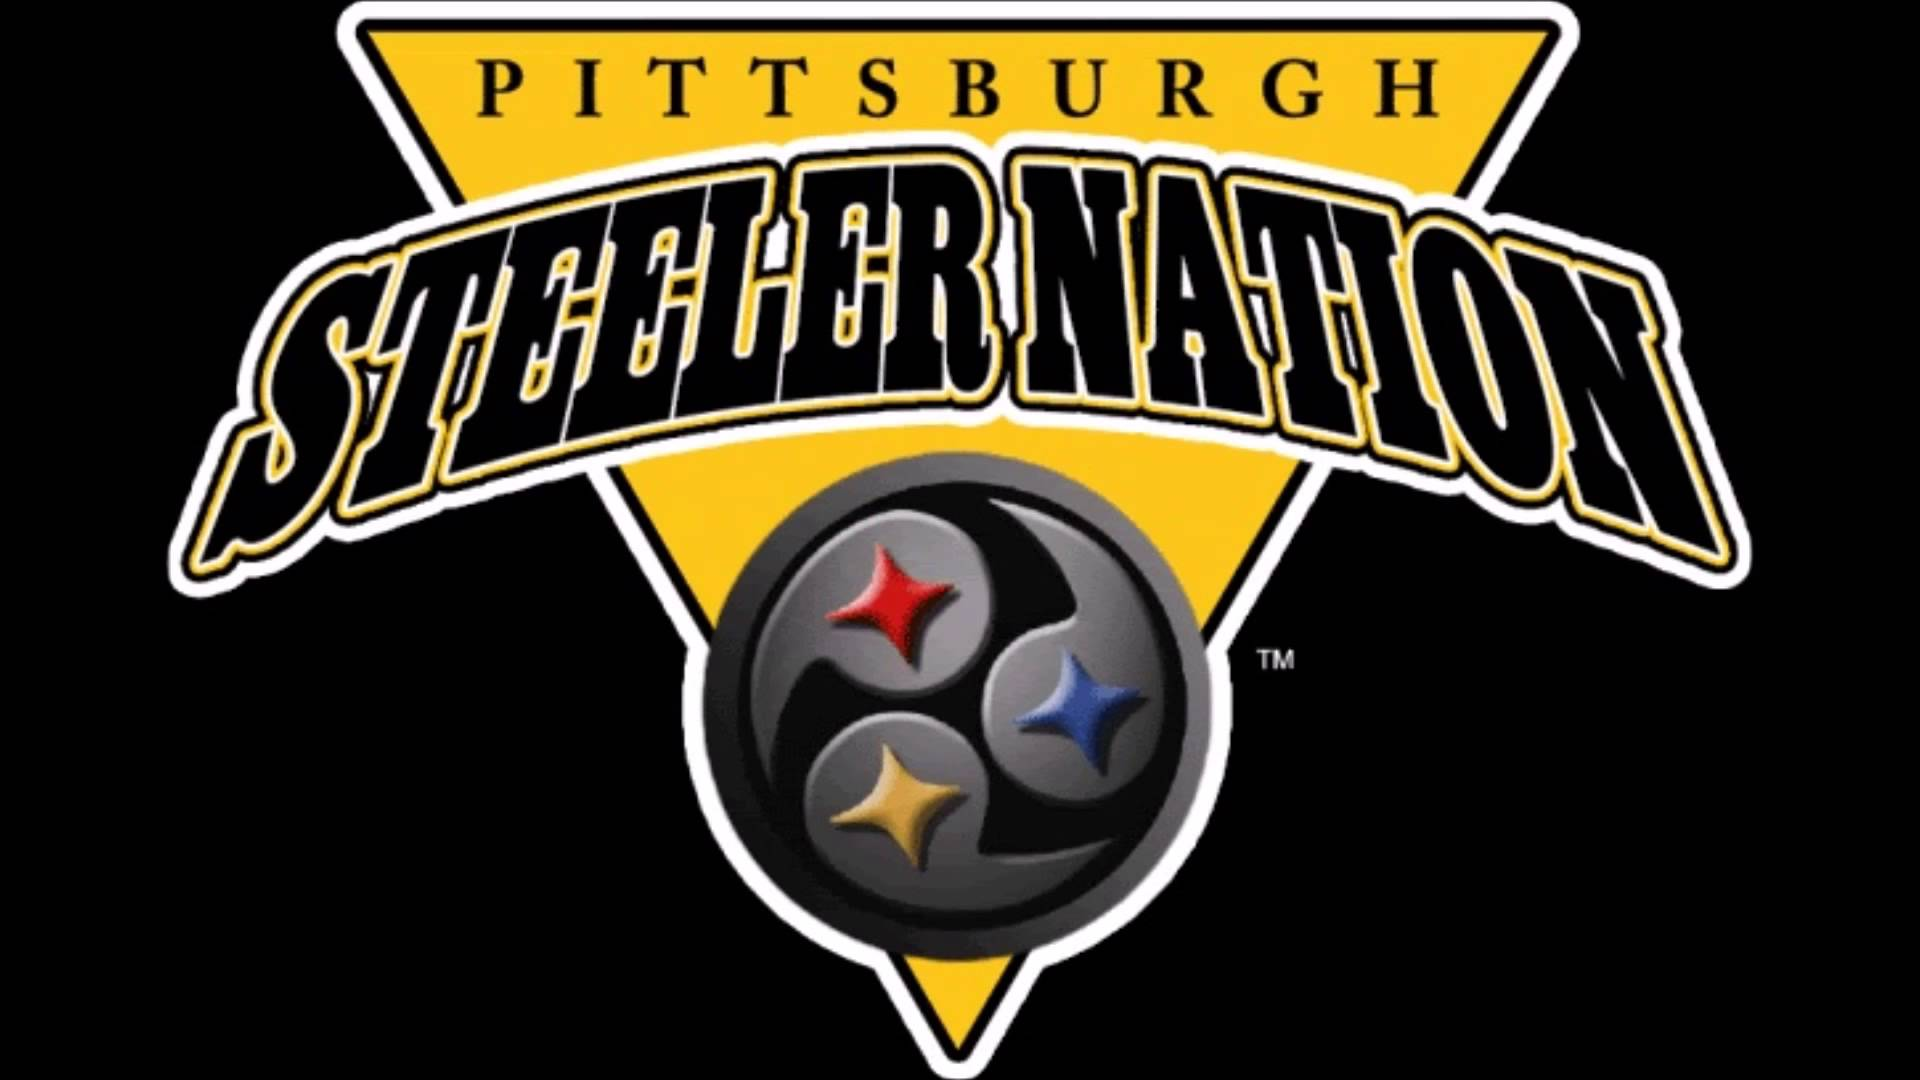 Pittsburgh Steelers Logo Wallpaper Posted By Samantha Walker